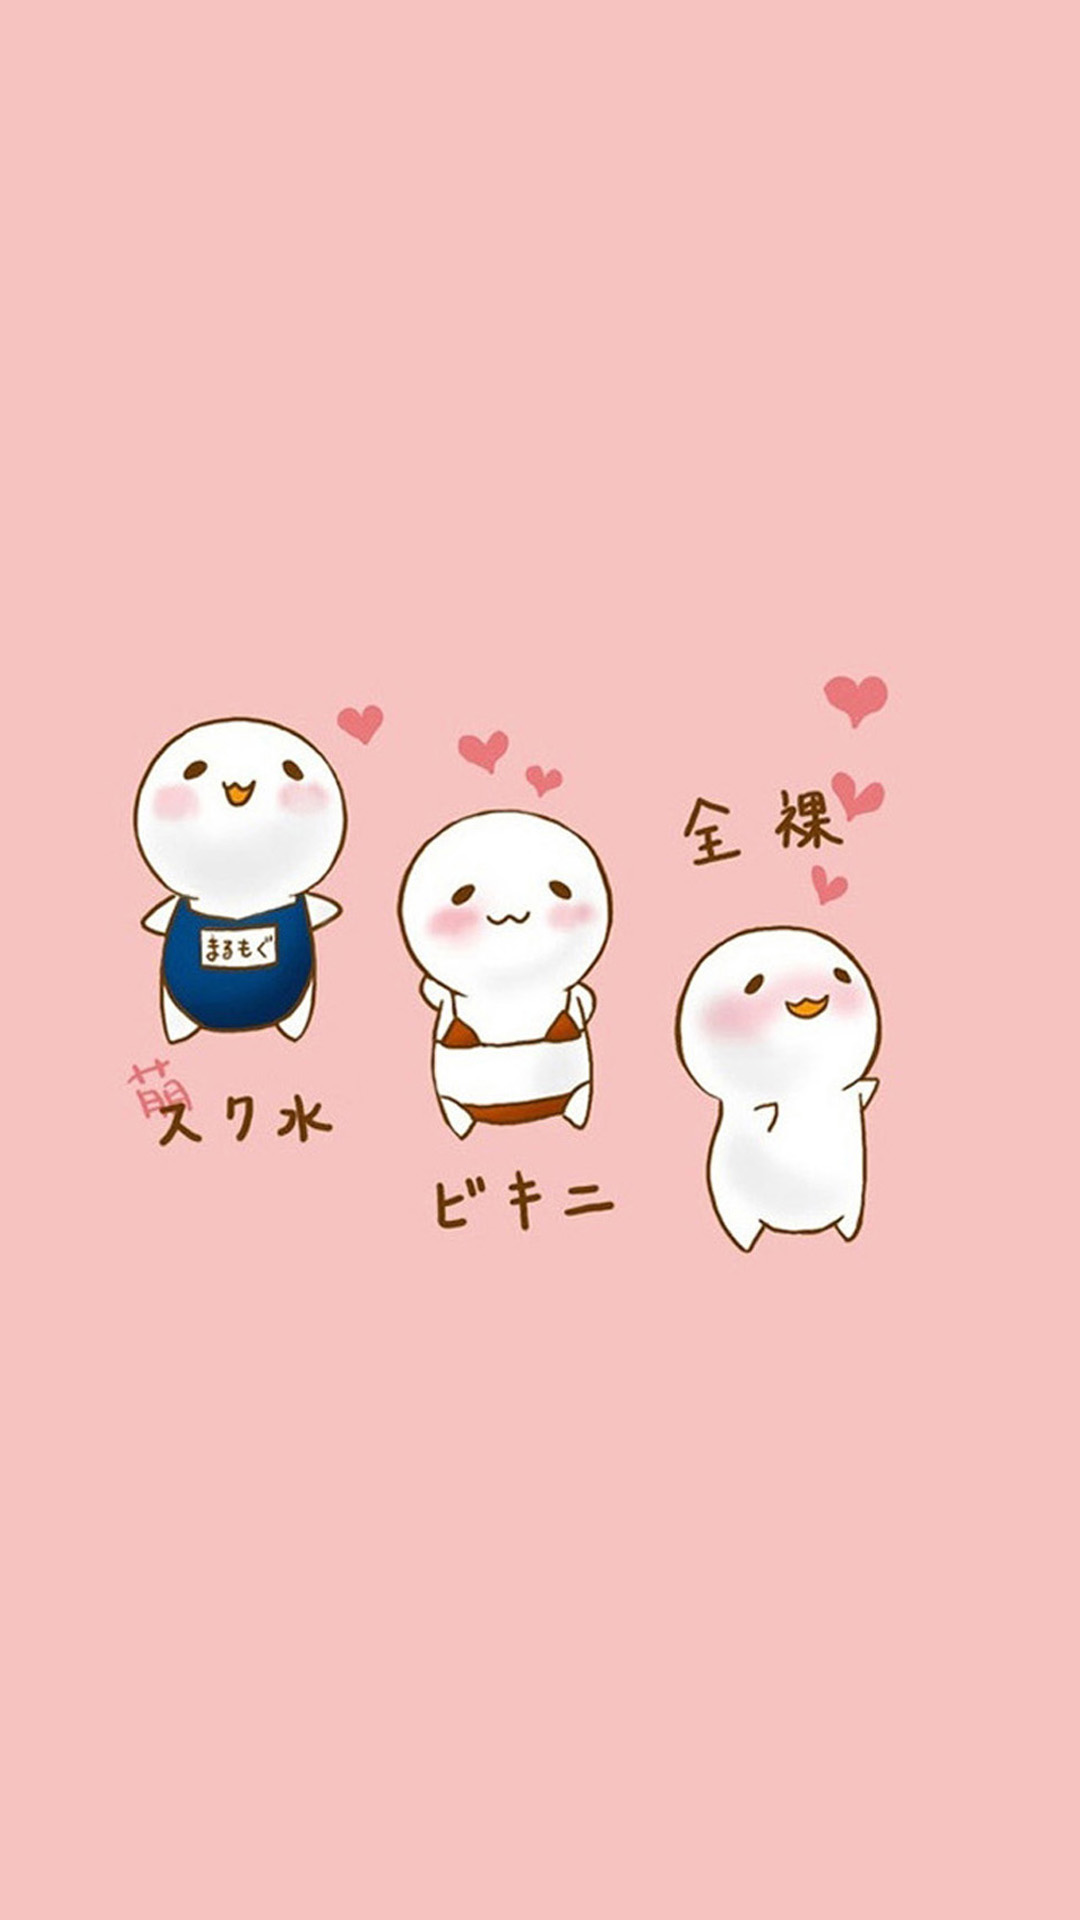 Iphone6plus iphone6plus - Cute asian cartoon wallpaper ...